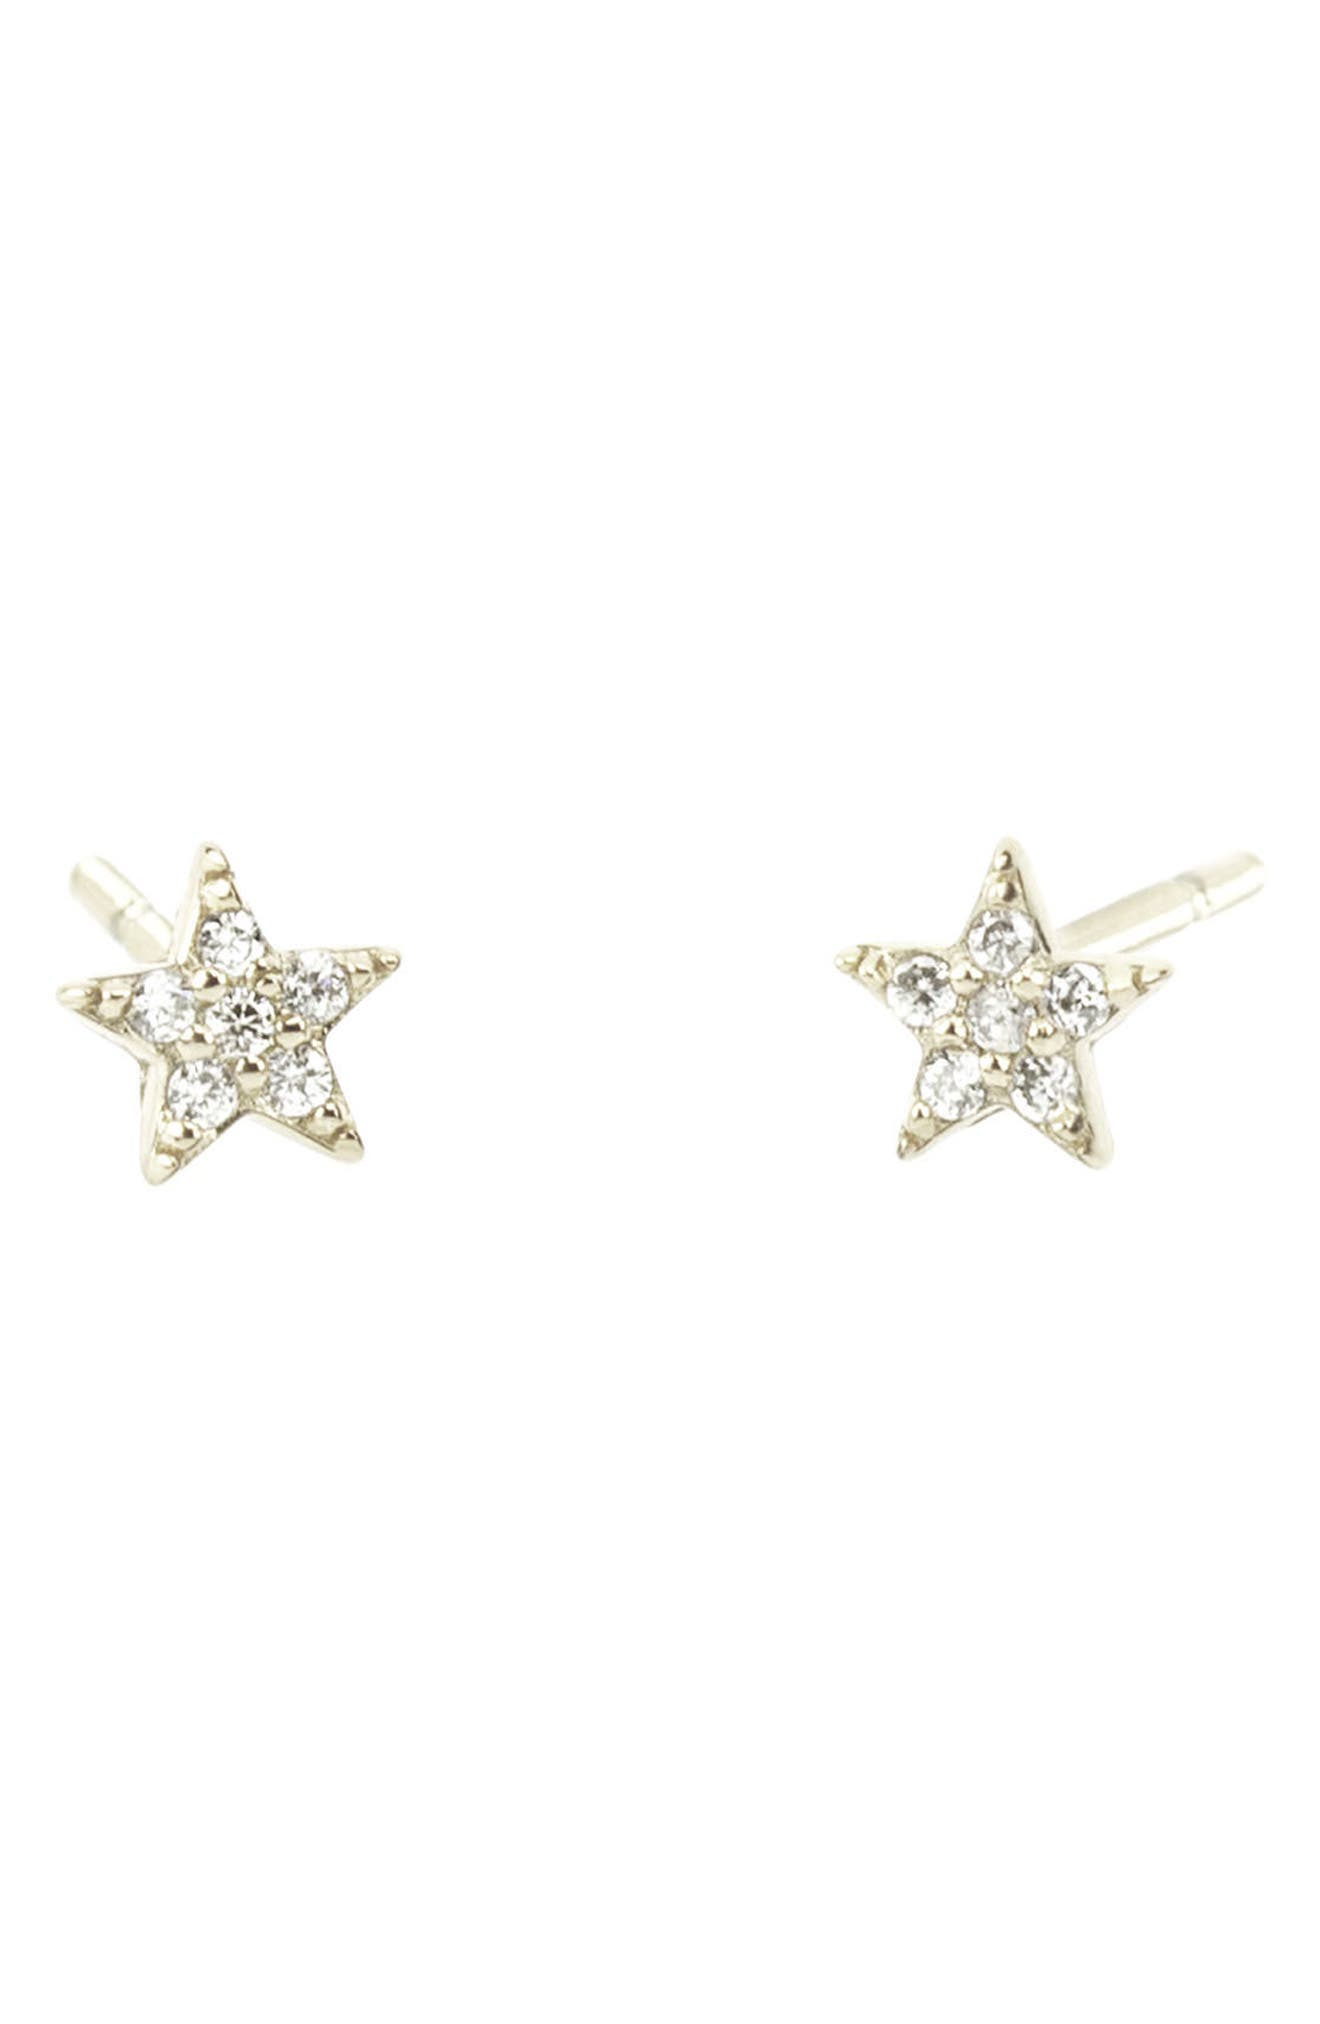 Pavé Star Stud Earrings,                             Main thumbnail 1, color,                             040